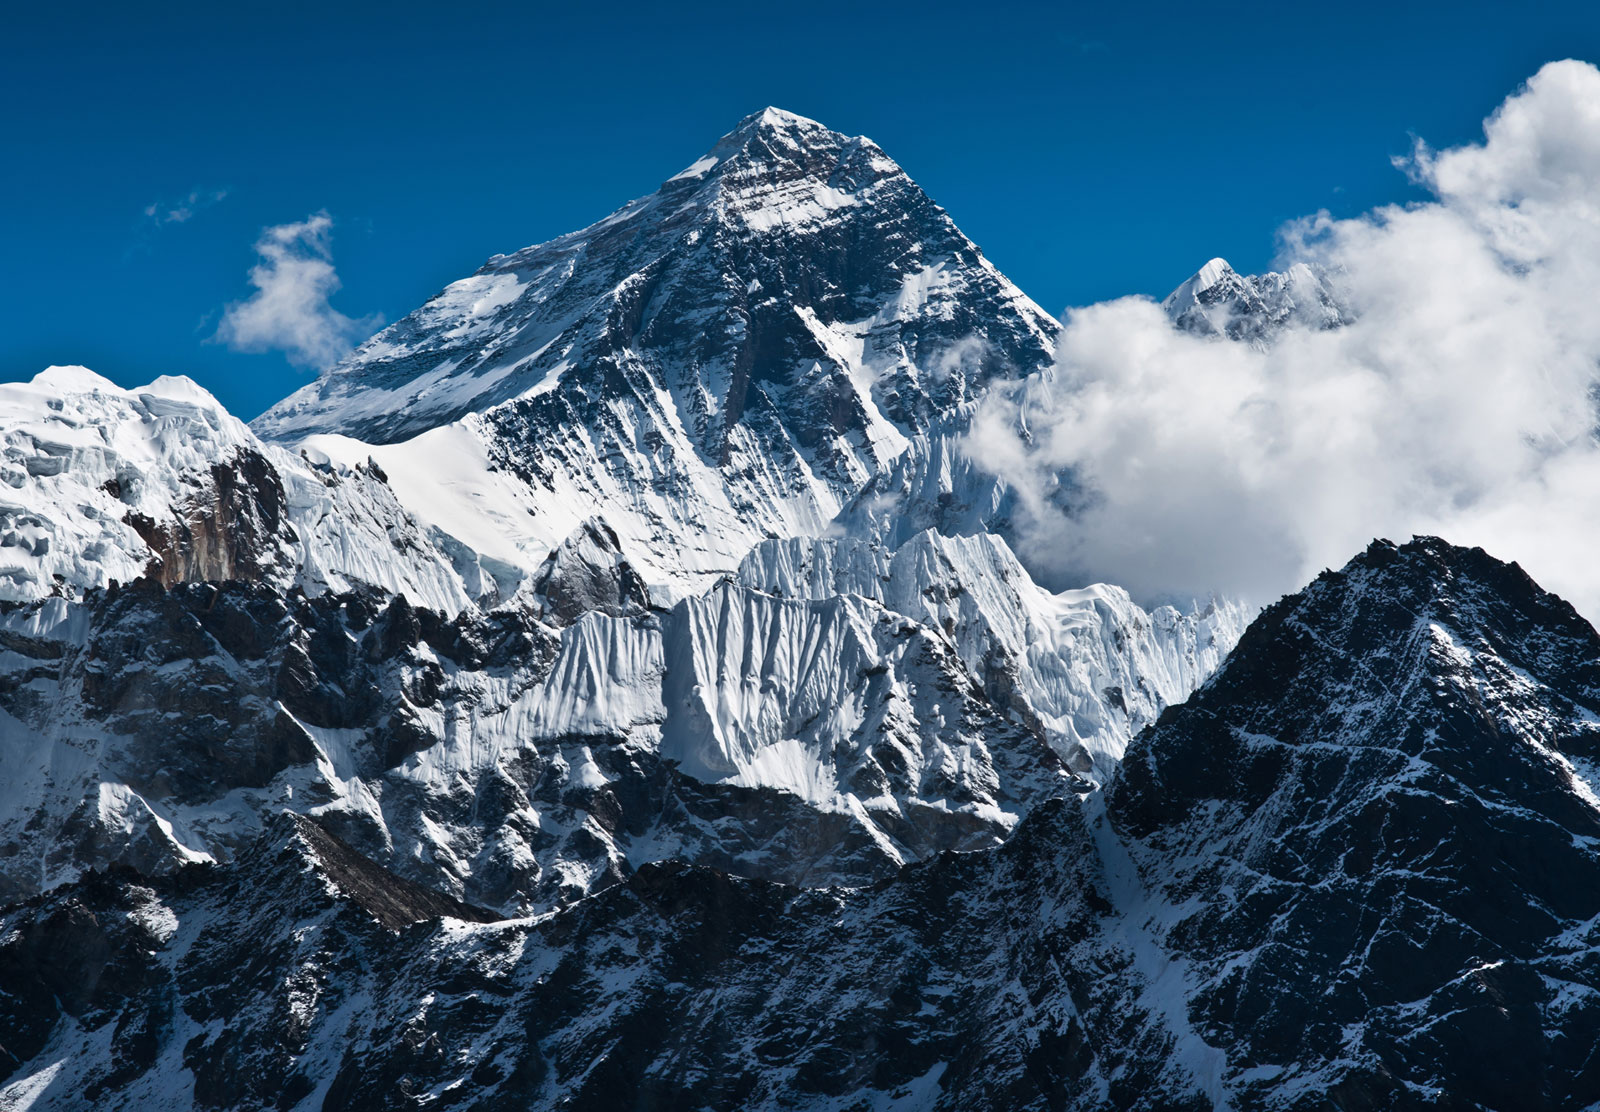 New height of Mt Everest measure 8848.86 meters